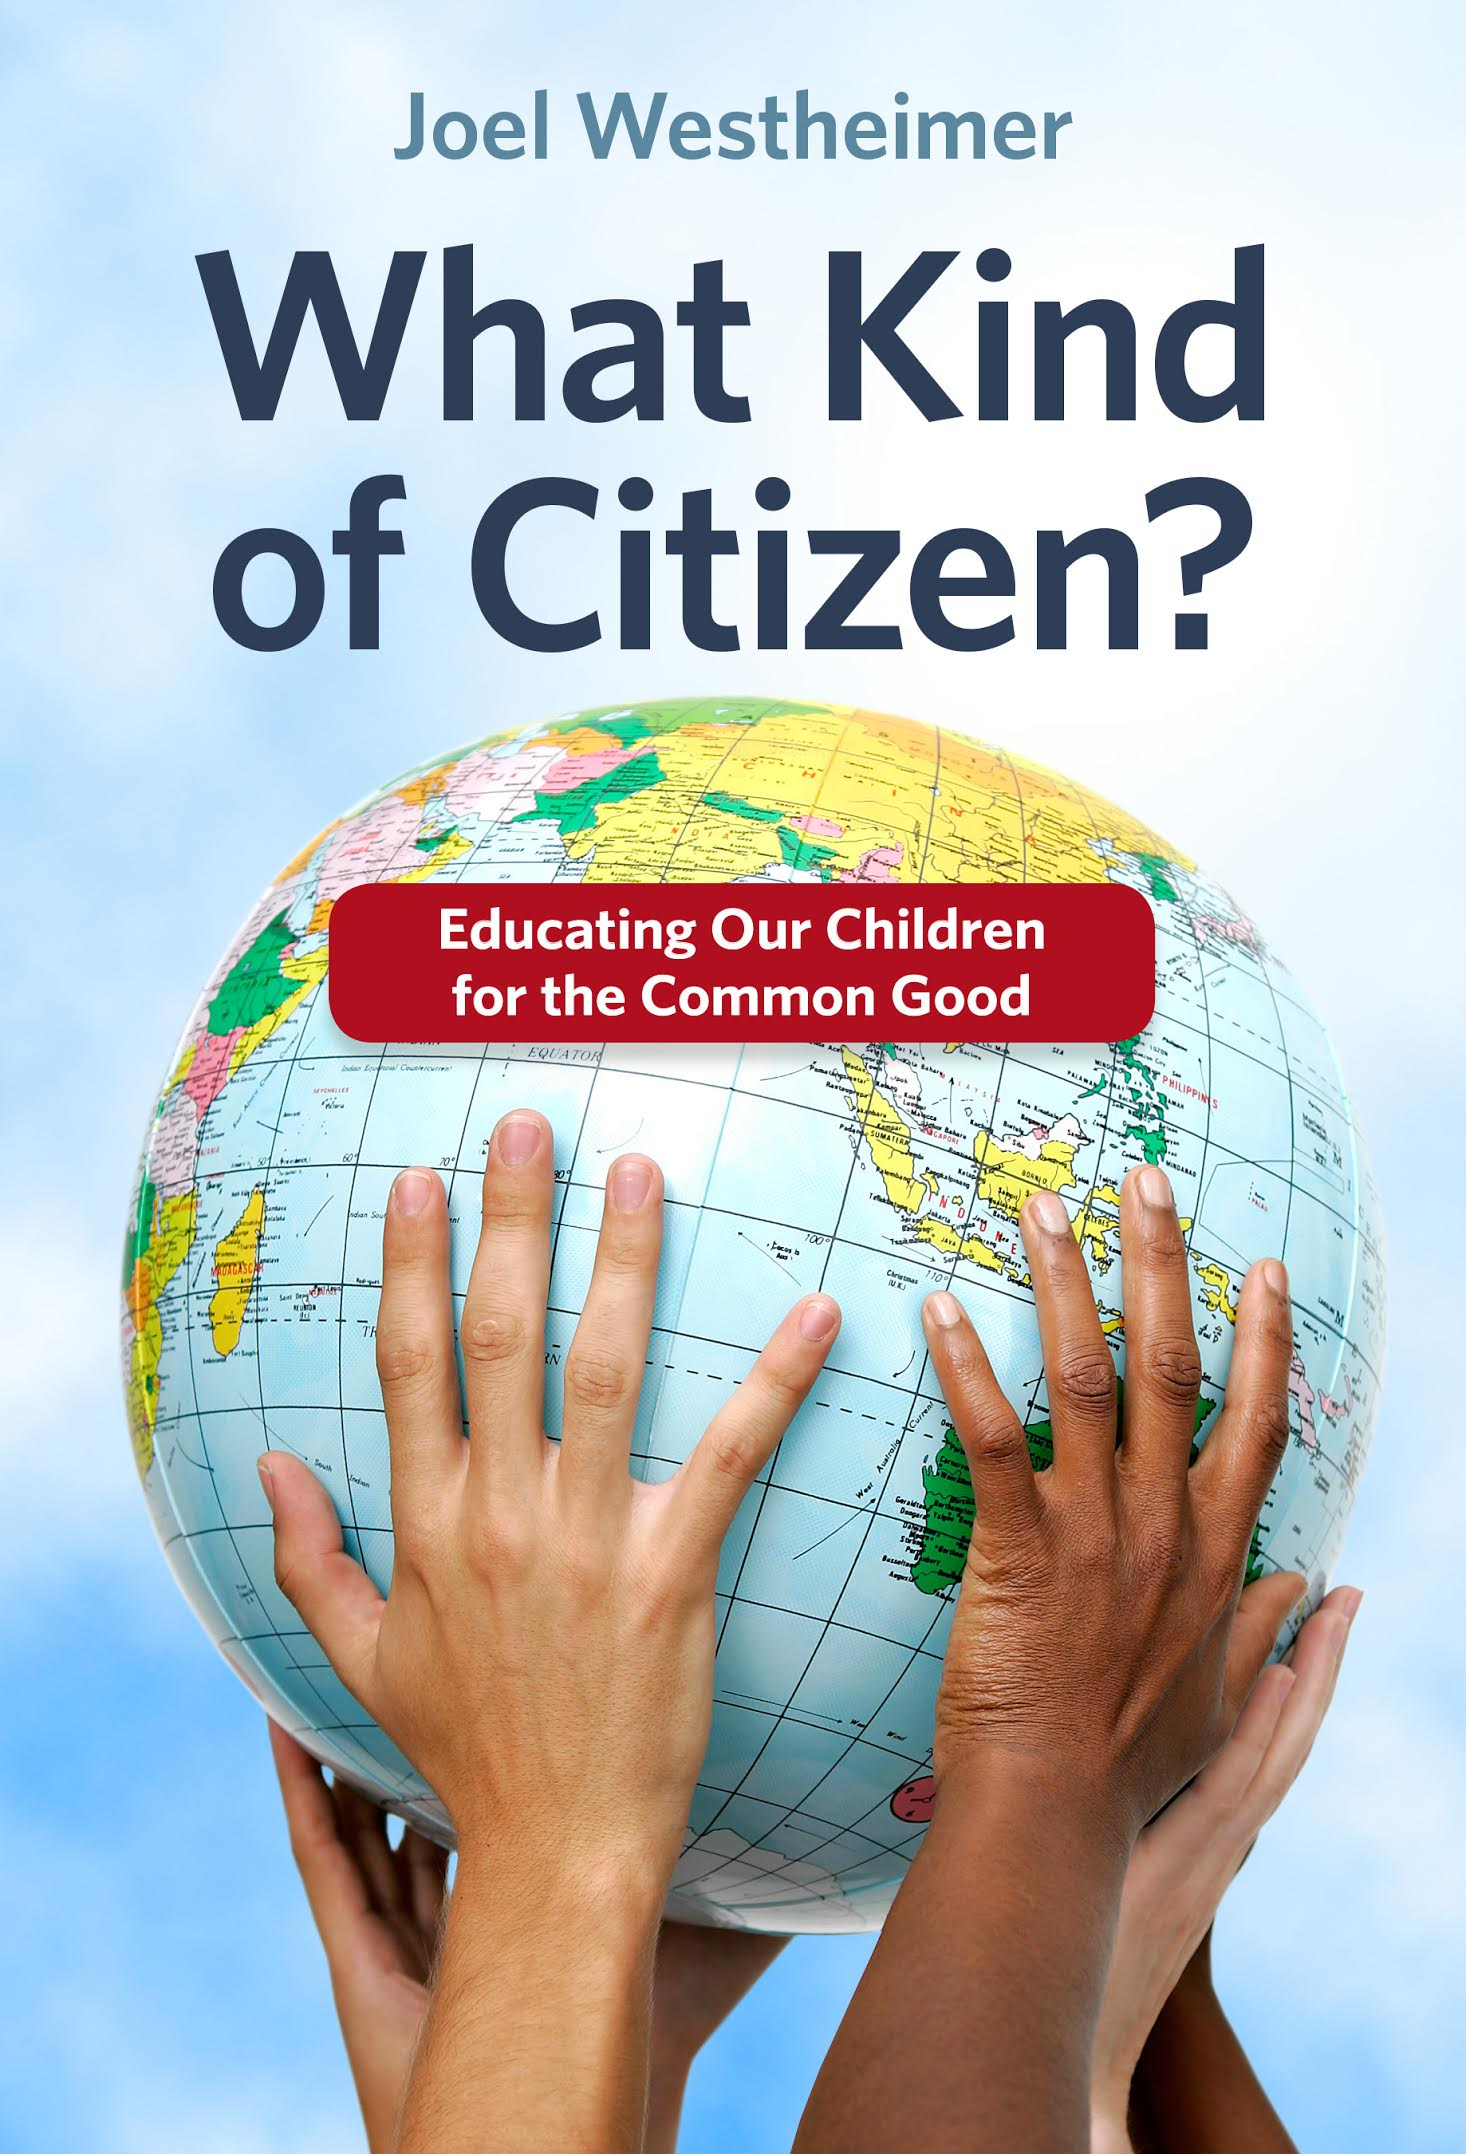 What Kind of Citizen cover.jpg